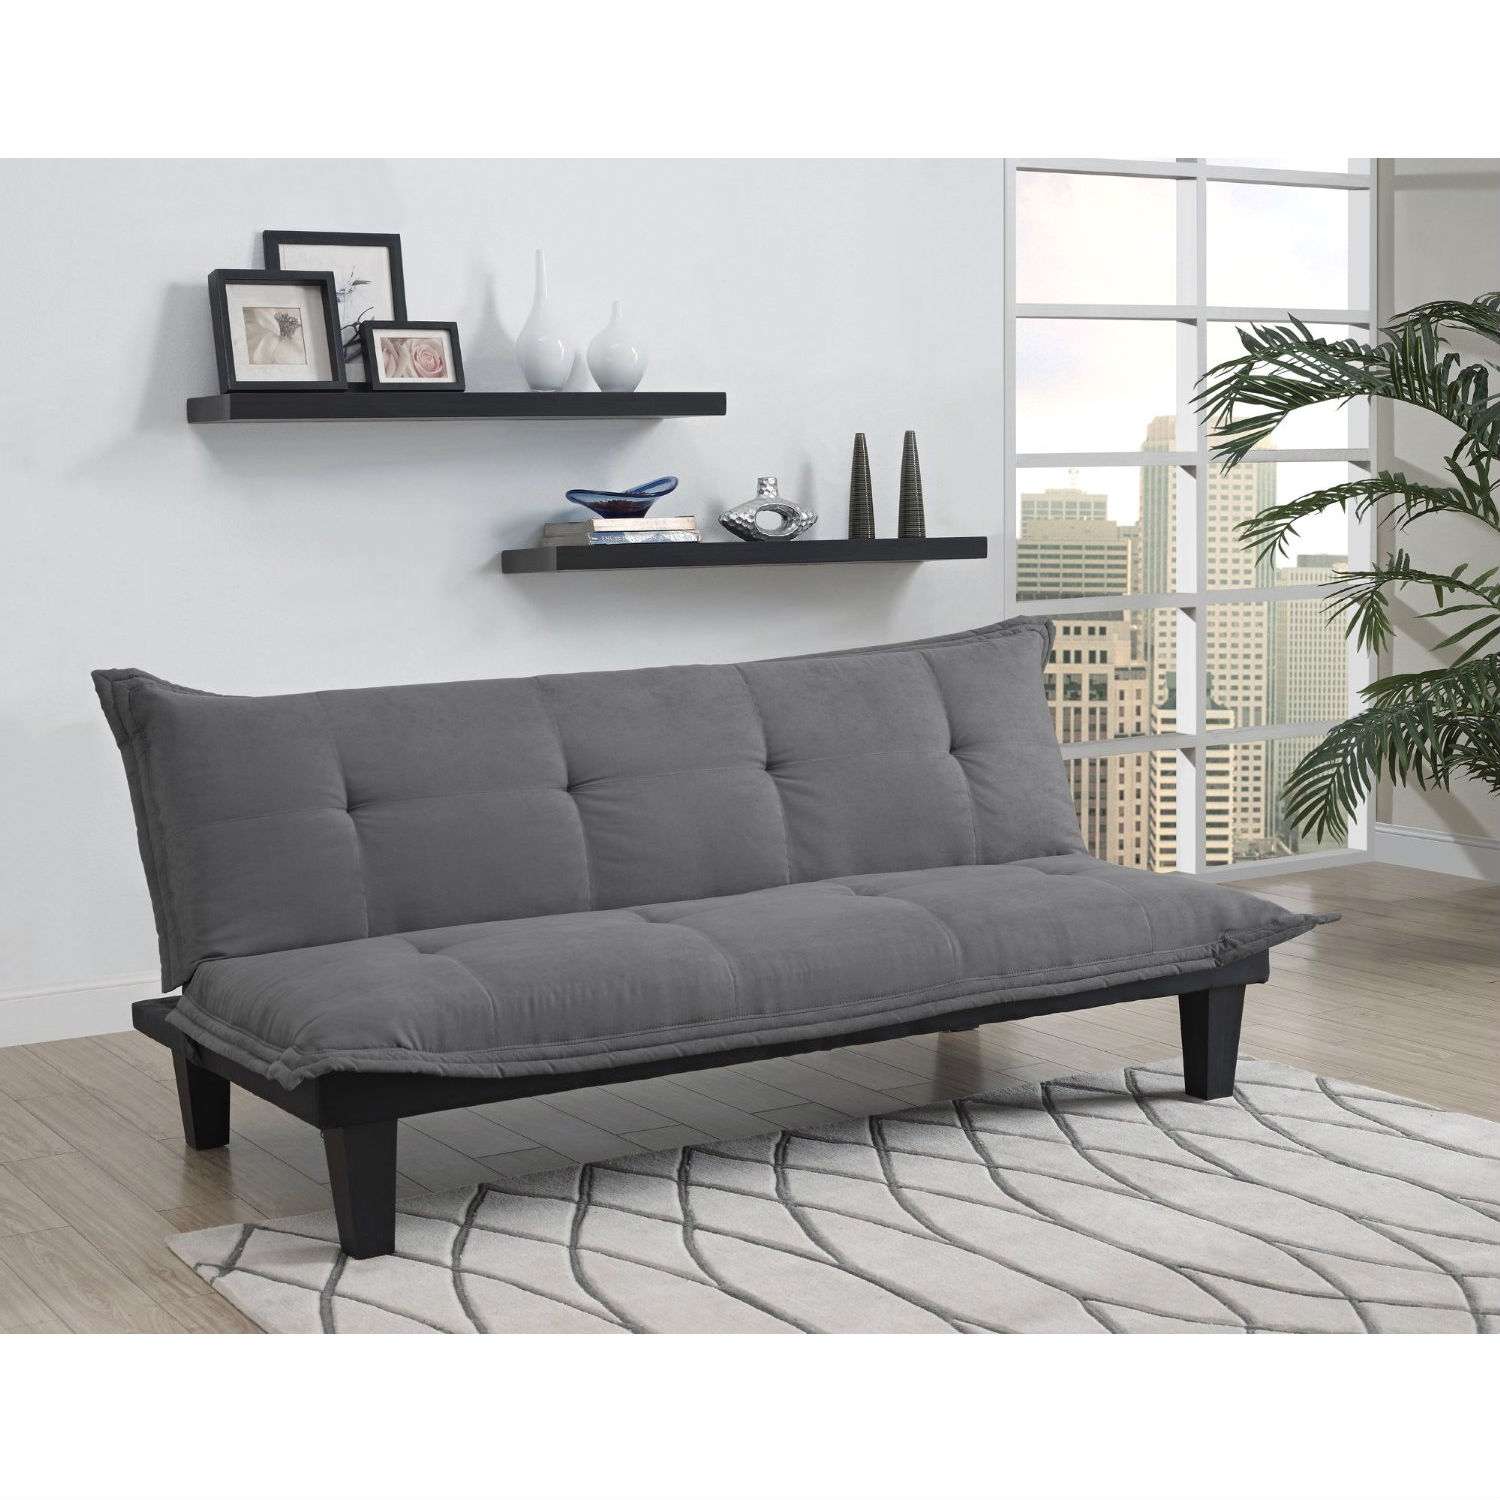 today free futon sleeper overstock a living handy sofa shipping convert microfiber garden grey sage home couch trace product